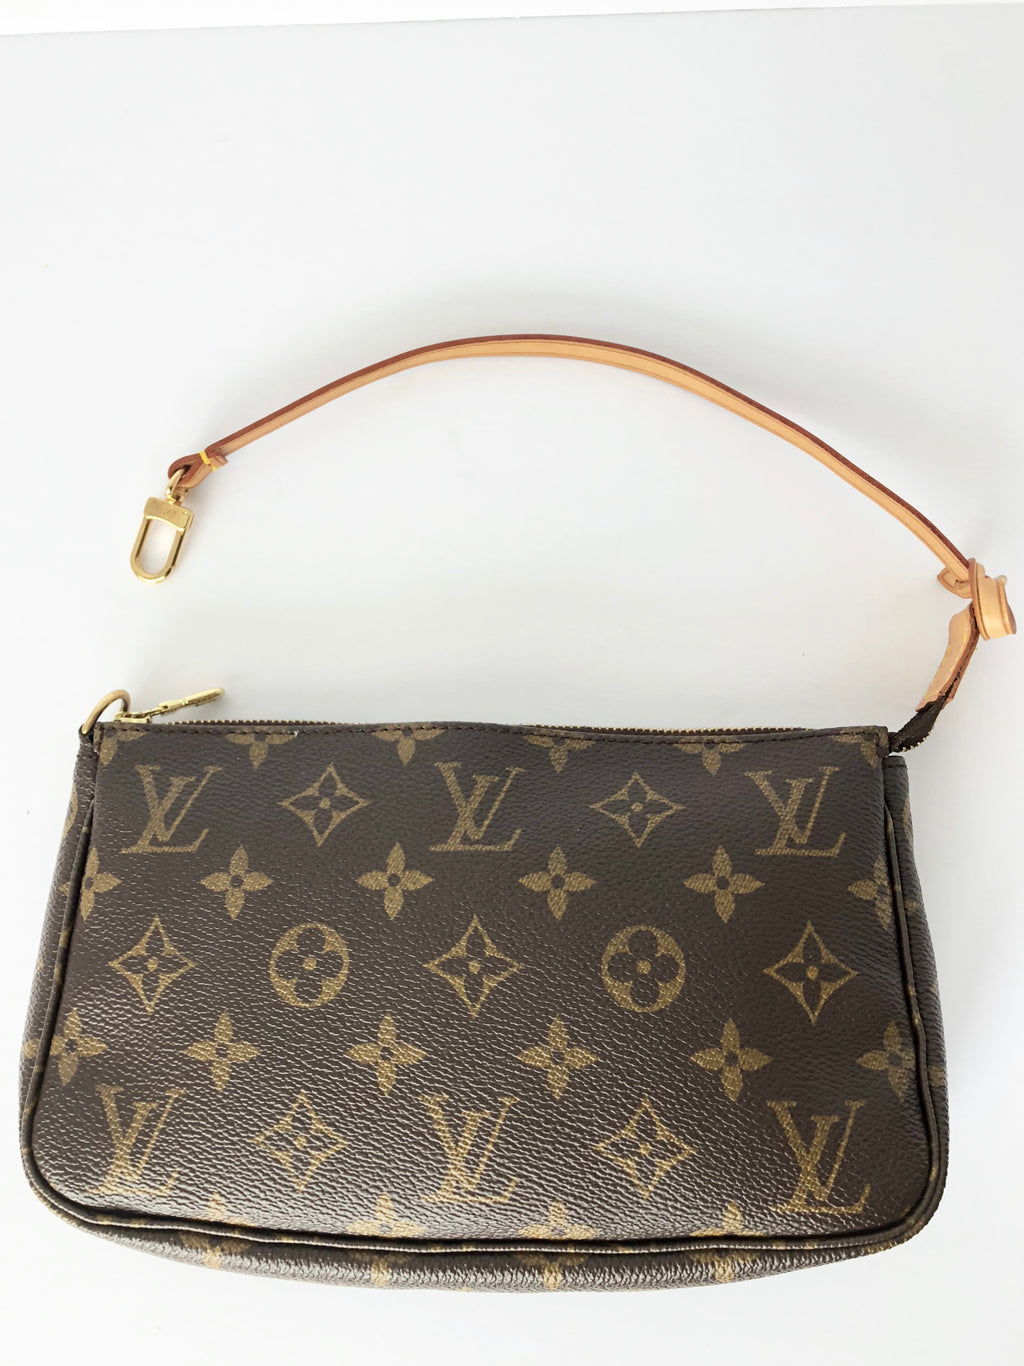 Louis Vuitton Pochette Accessoires Monogram Canvas Bag